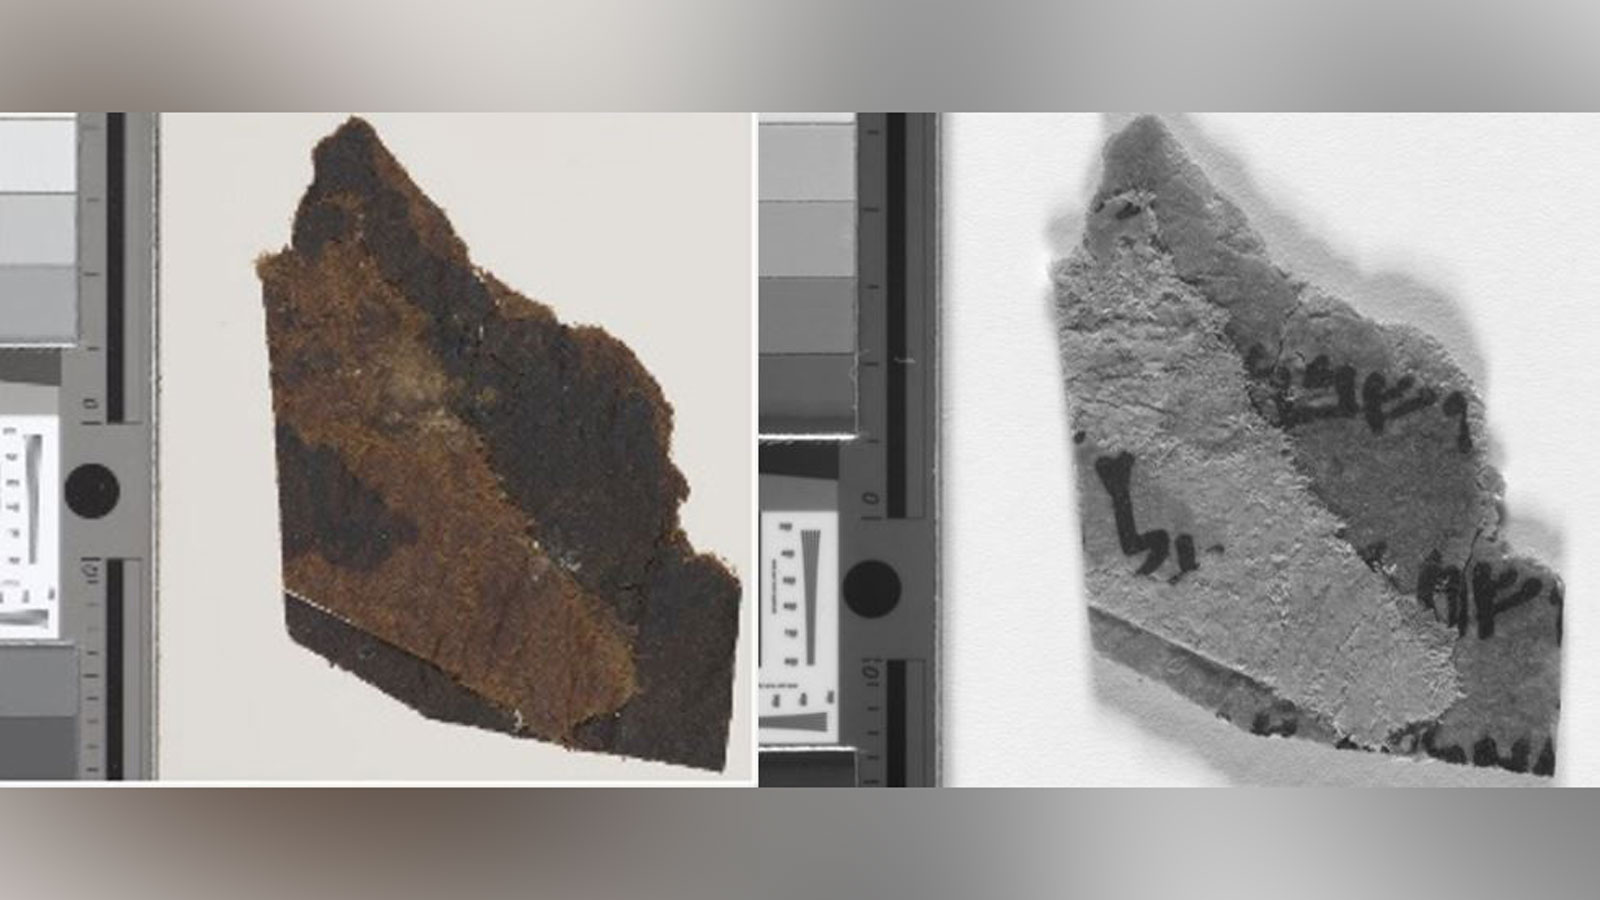 Fragments of the Dead Sea Scrolls long thought to be blank contain text that's invisible to the naked eye